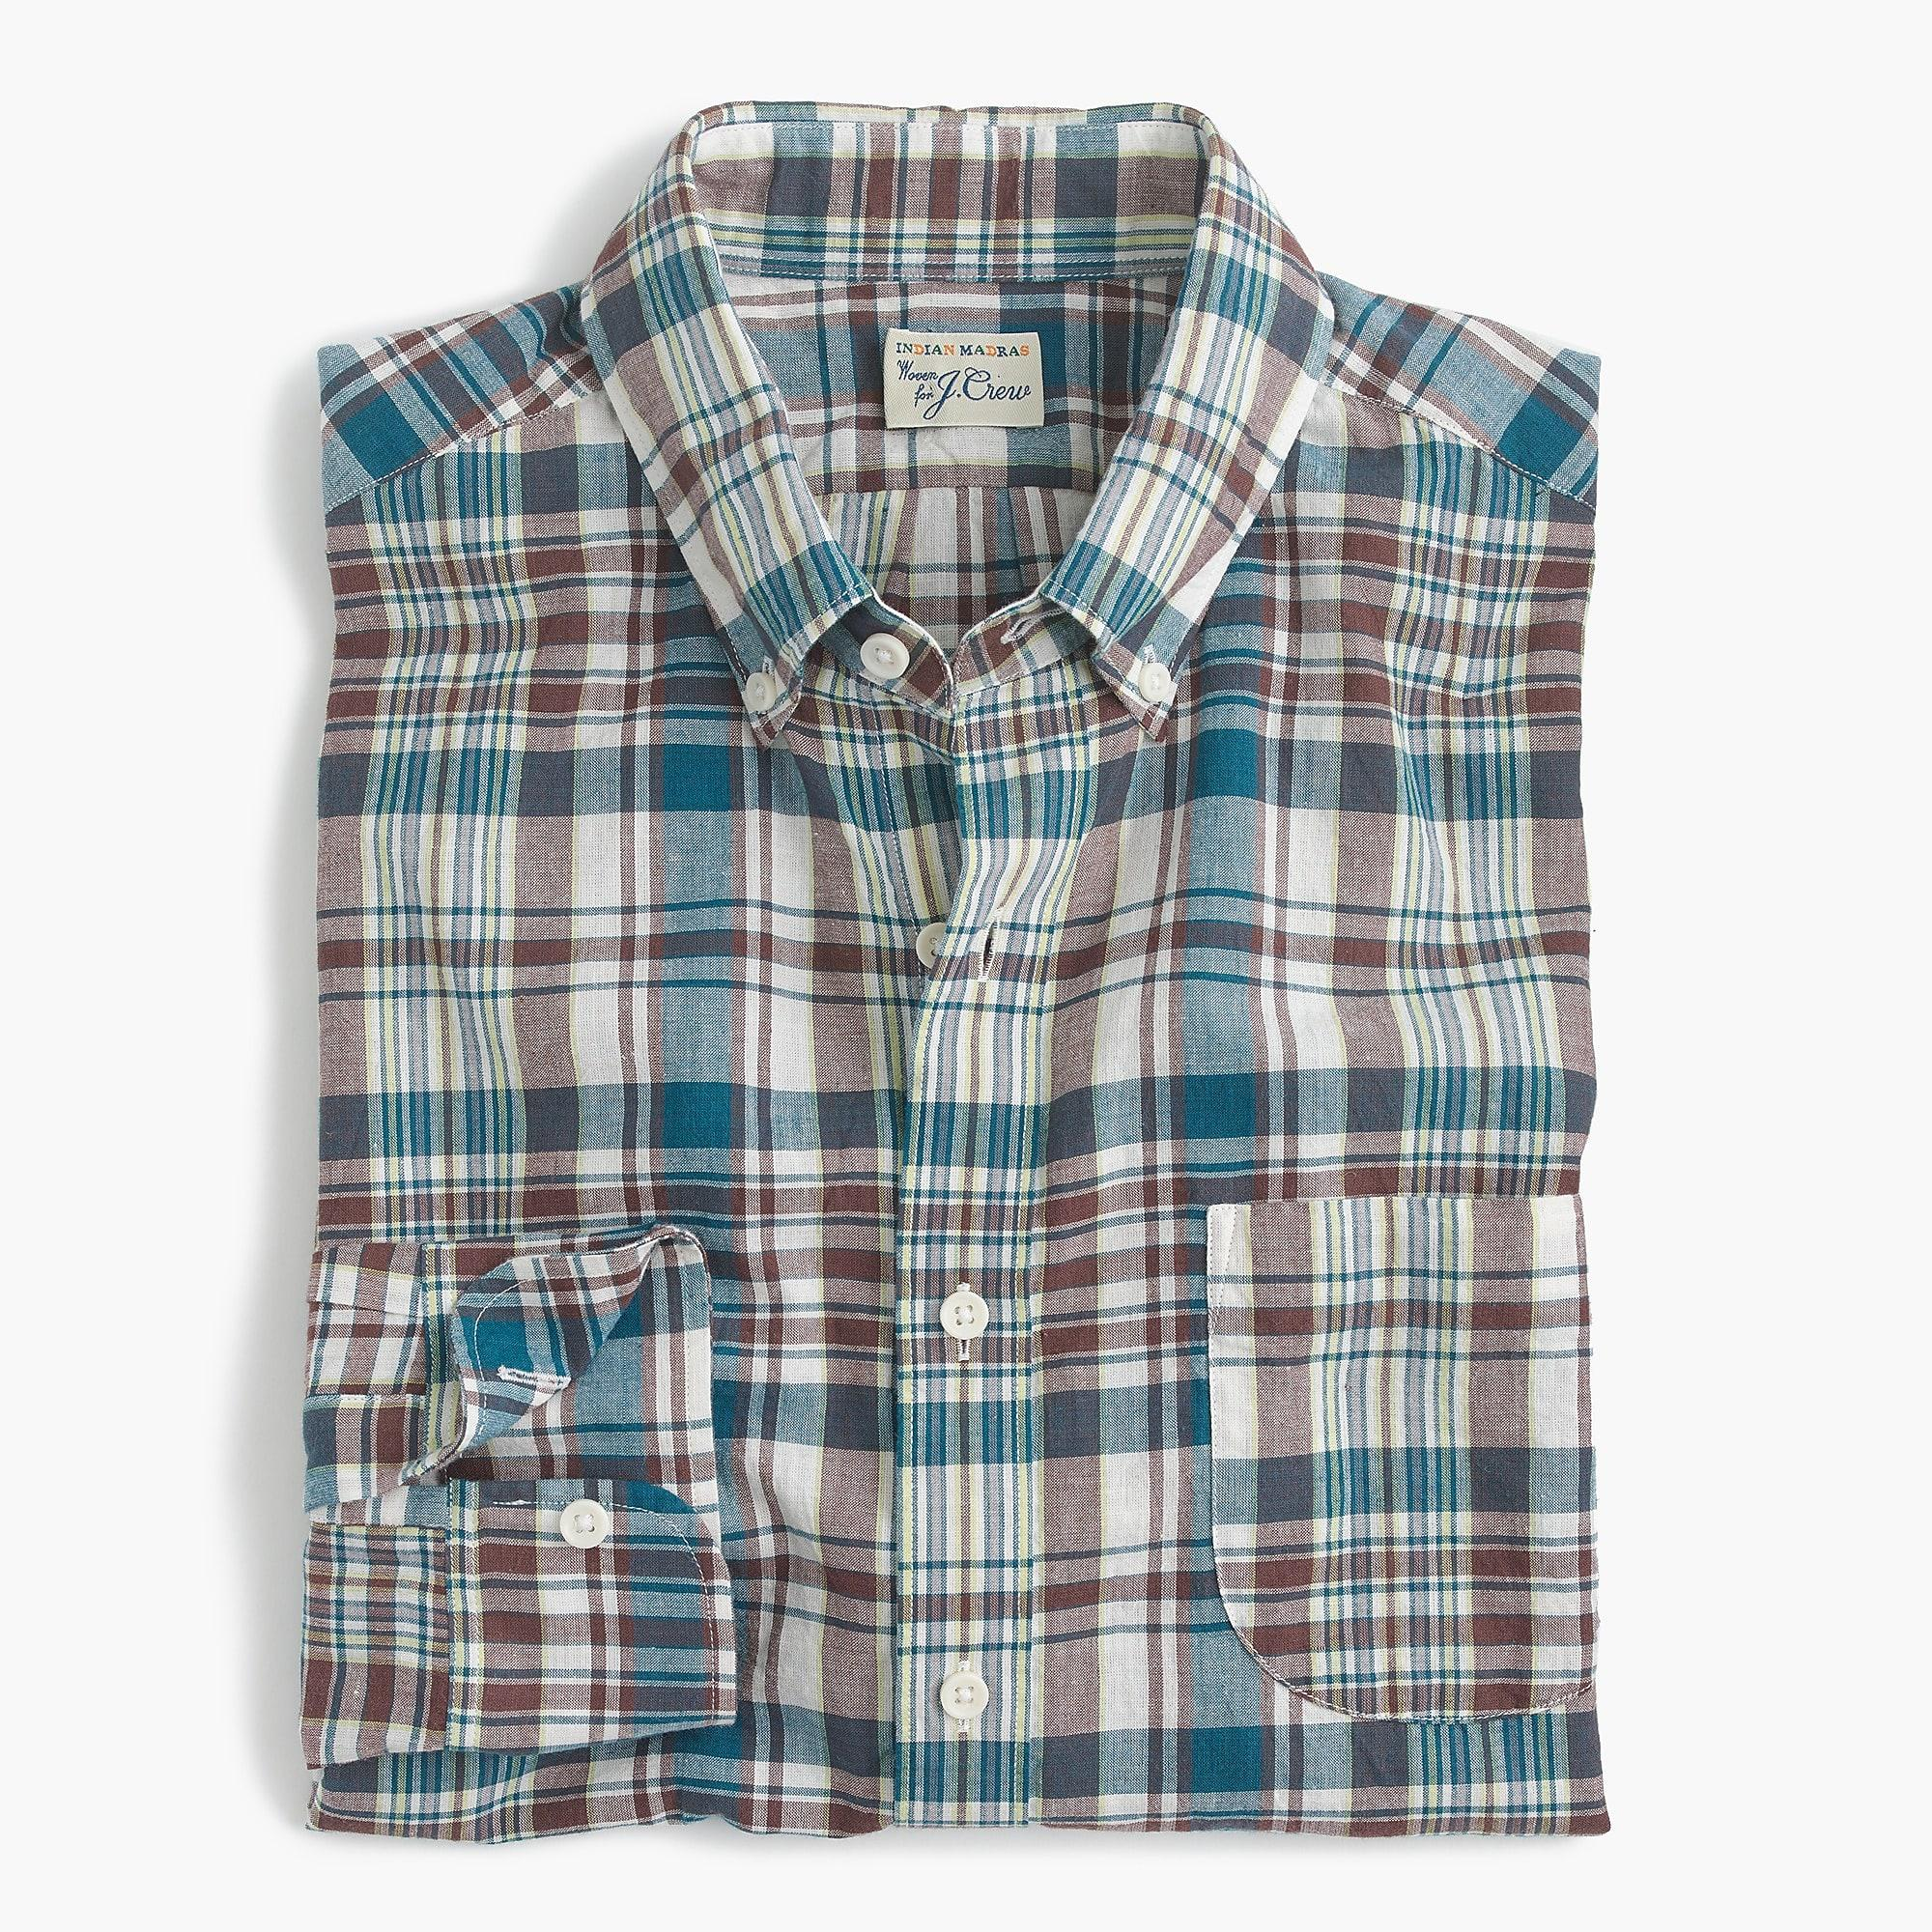 9b4975f0936 J.Crew Madras Shirt In Faded Plaid in Blue for Men - Lyst